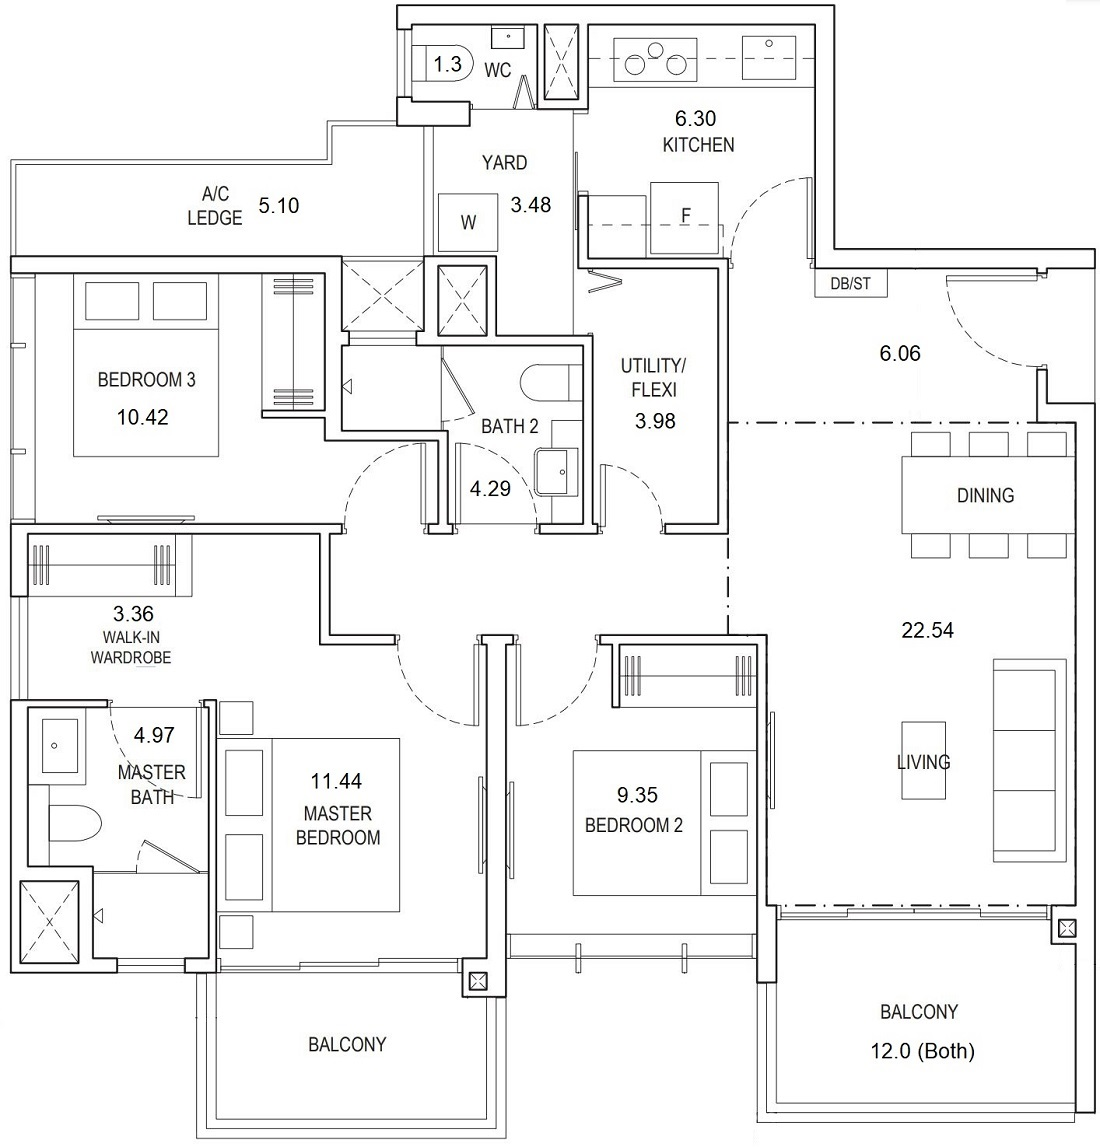 Piermont Grand Floor Plan 3 Bedroom Premium Type A4d 105 Sqm / 1130 Sqft Showflat Layout